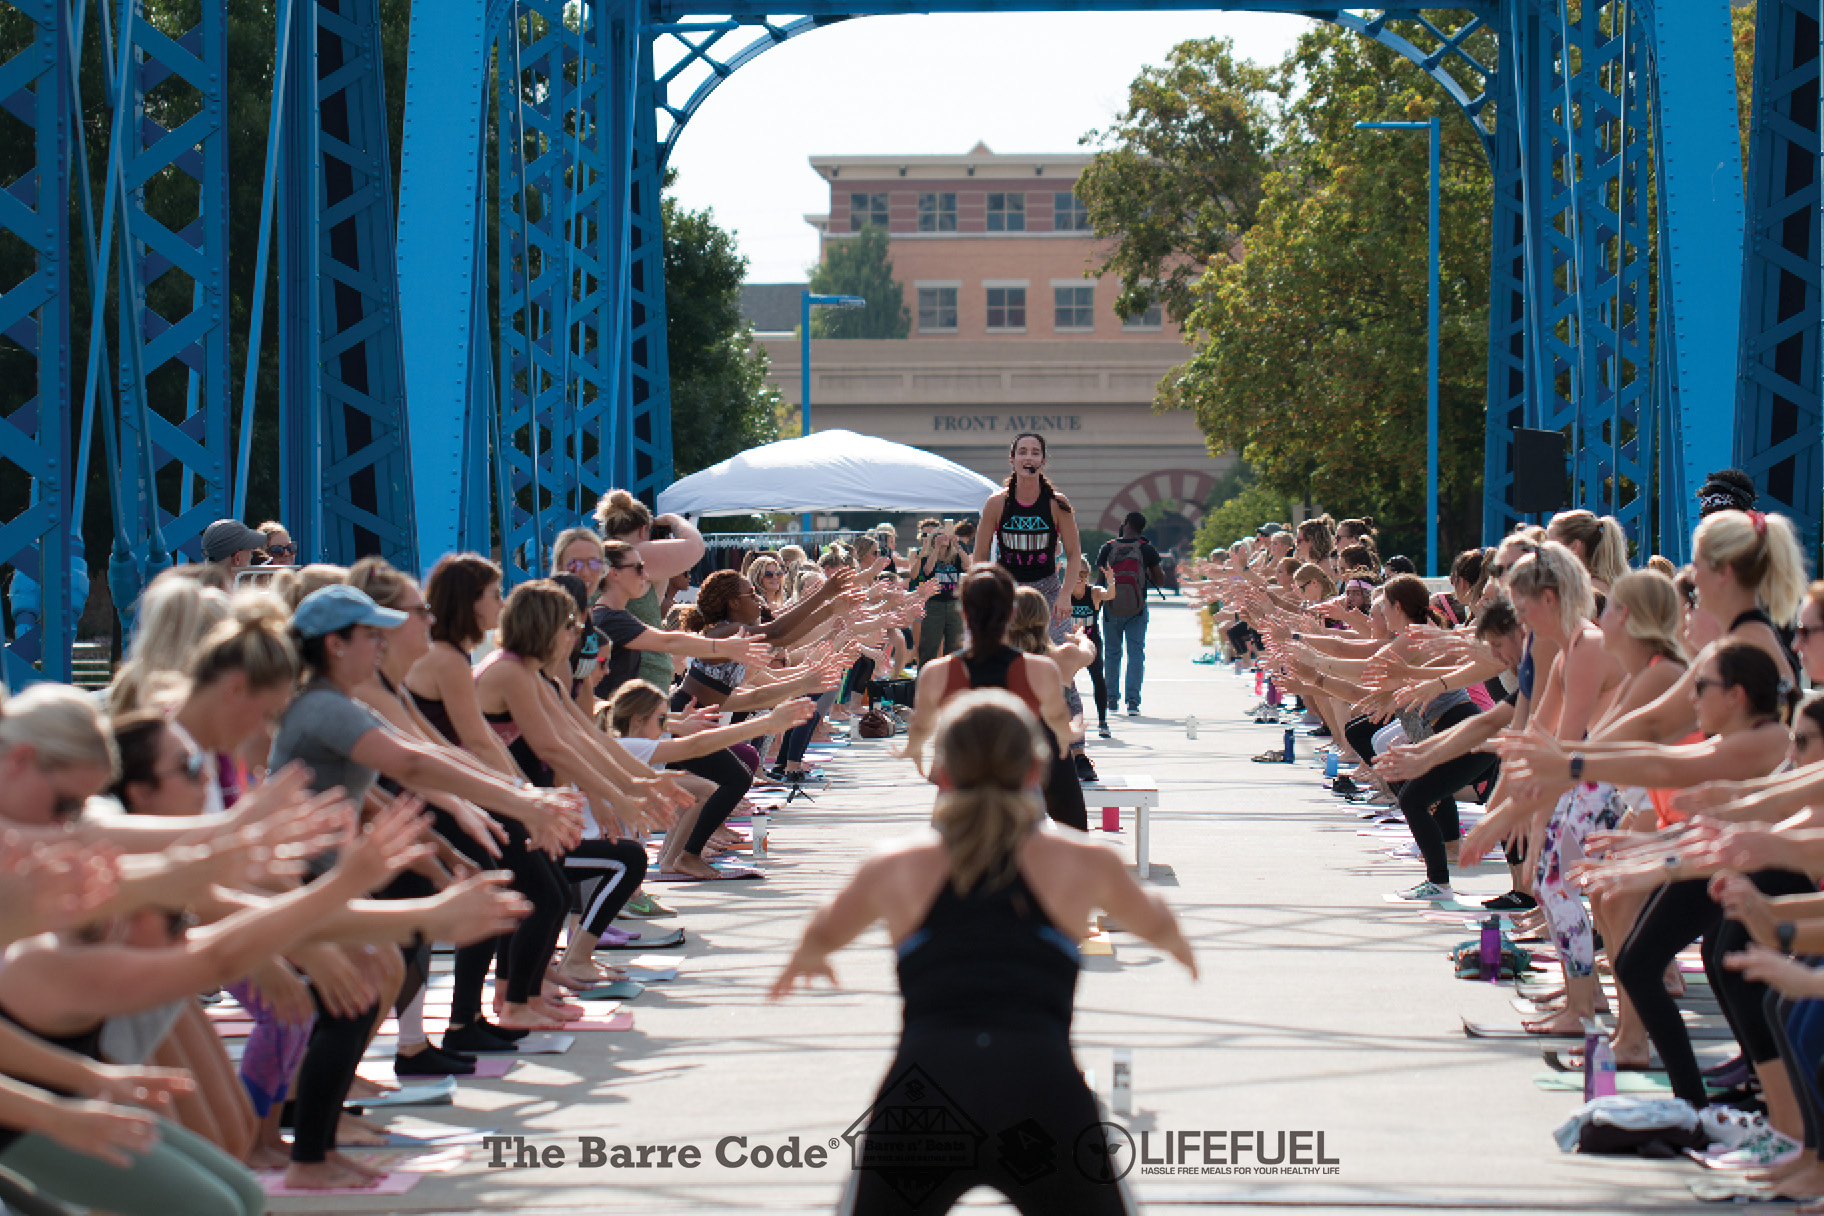 190805_the_barre_code_lifefuel_18.jpg